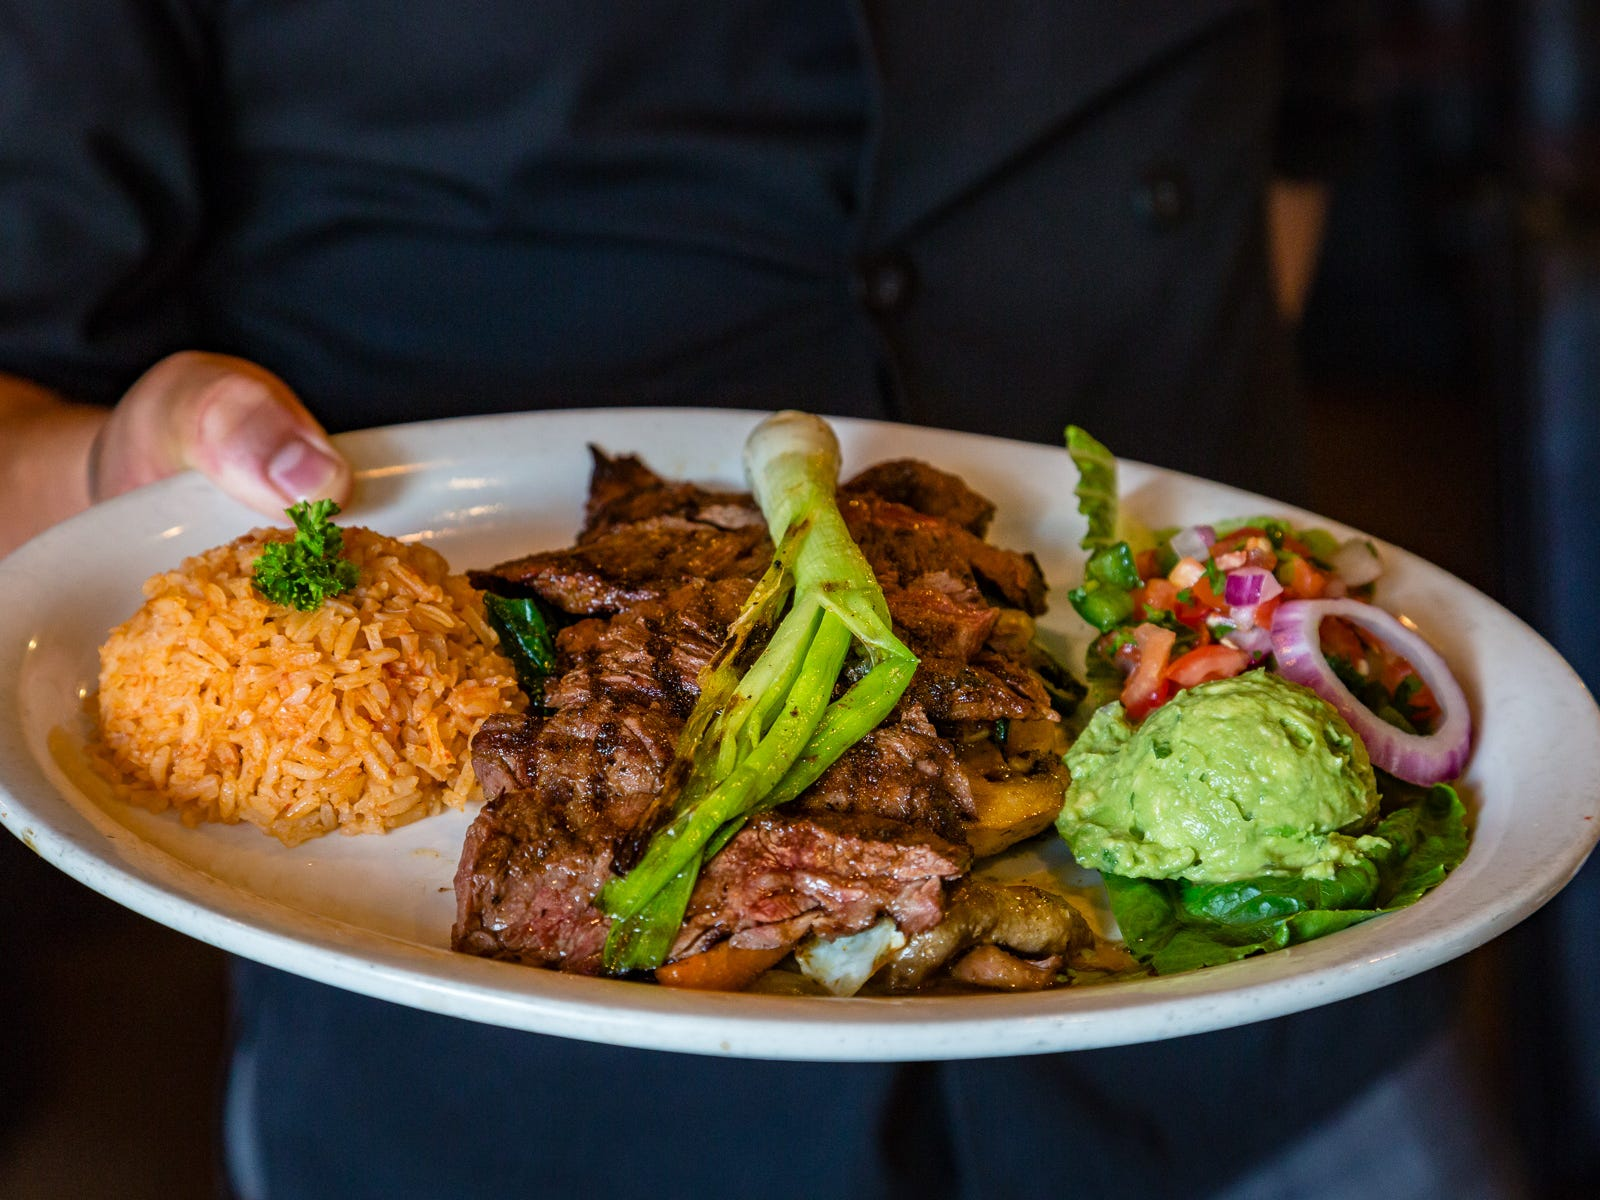 Grilled skirt steak, Mexican rice, guacamole and pico de gallo make this carne asada at La Comida a fajita plate with few equals in town.